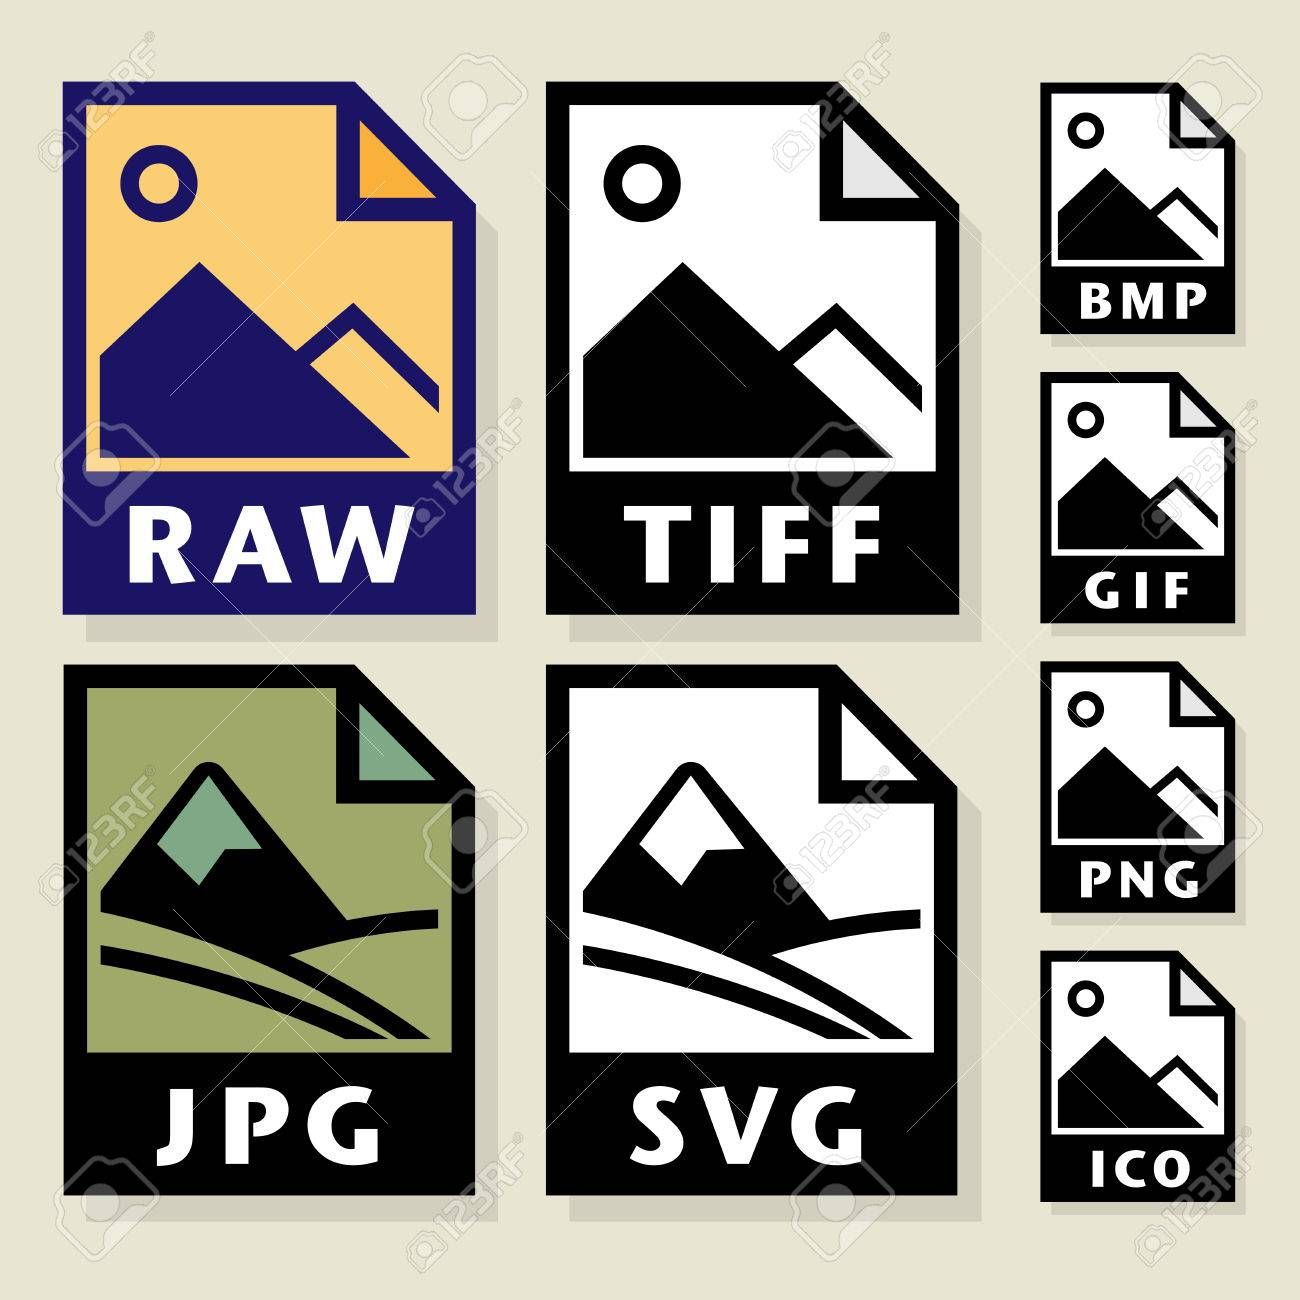 file format or file extension icons set vector illustration royalty